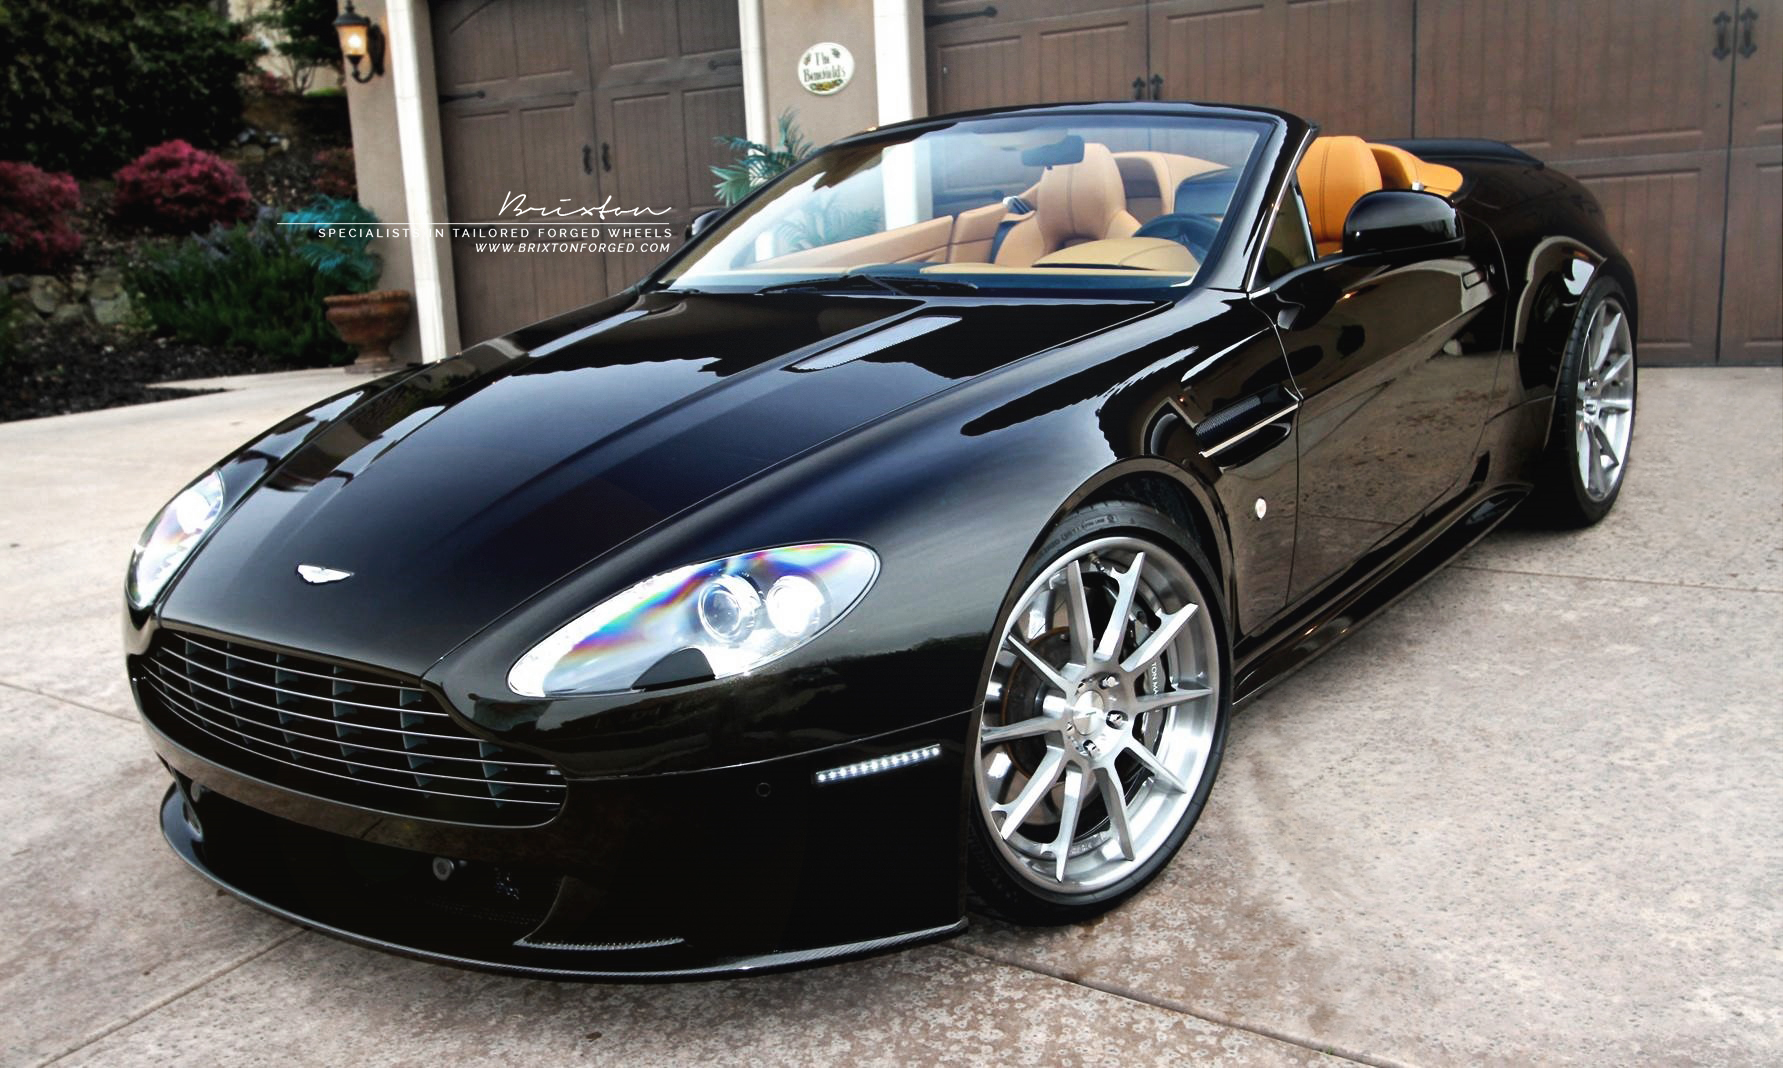 2014 Aston Martin V8 Vantage S Aftermarket Wheels